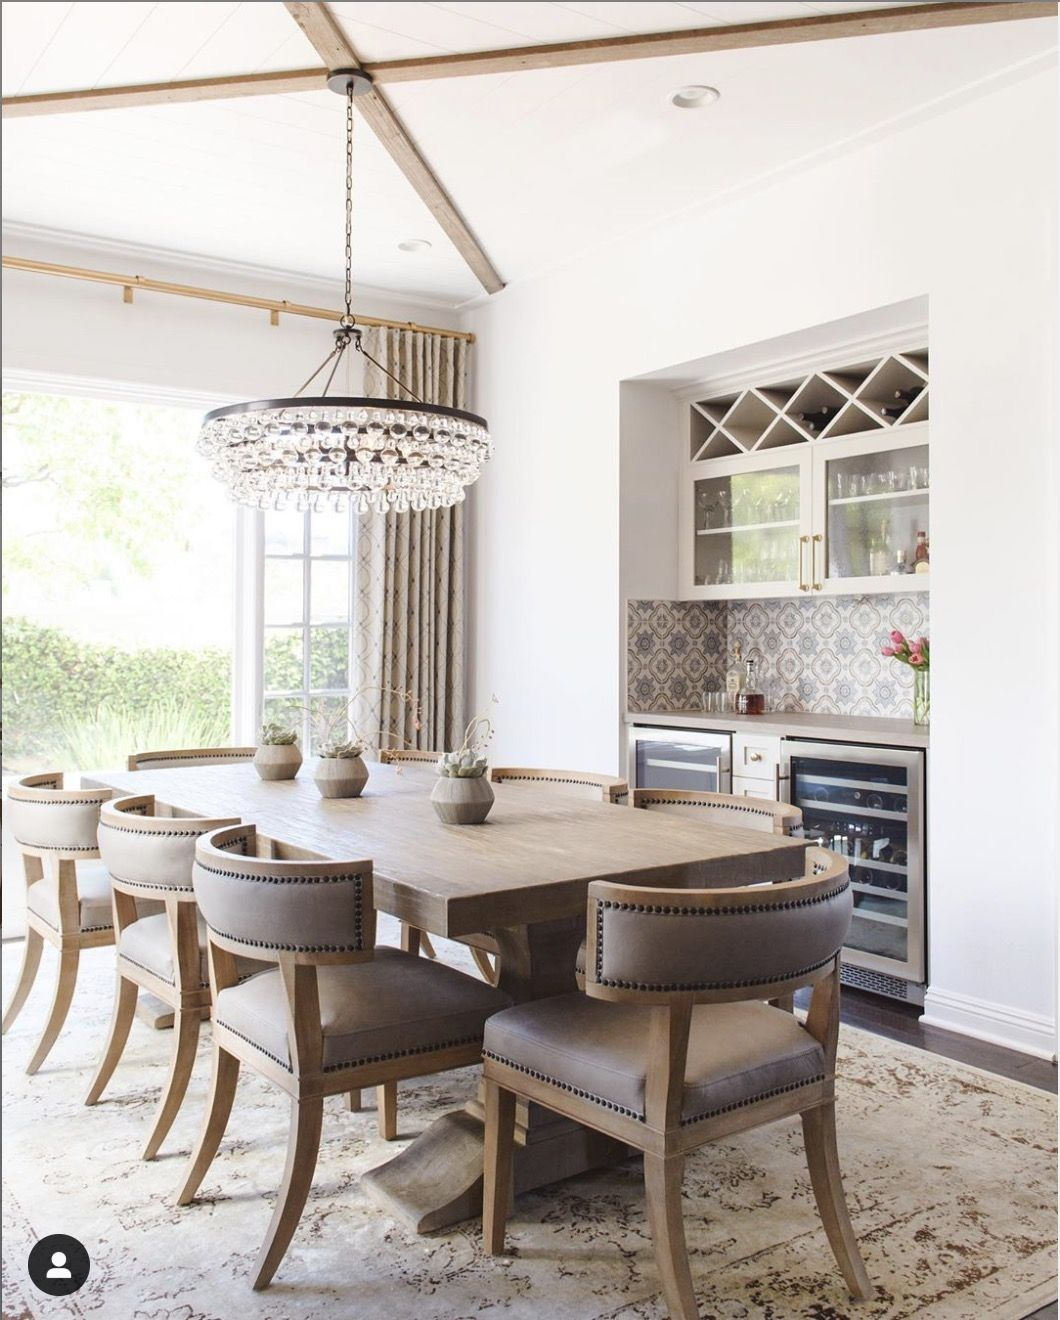 Houzz Says This Is The Number 1 Most Saved Dining Room Since April